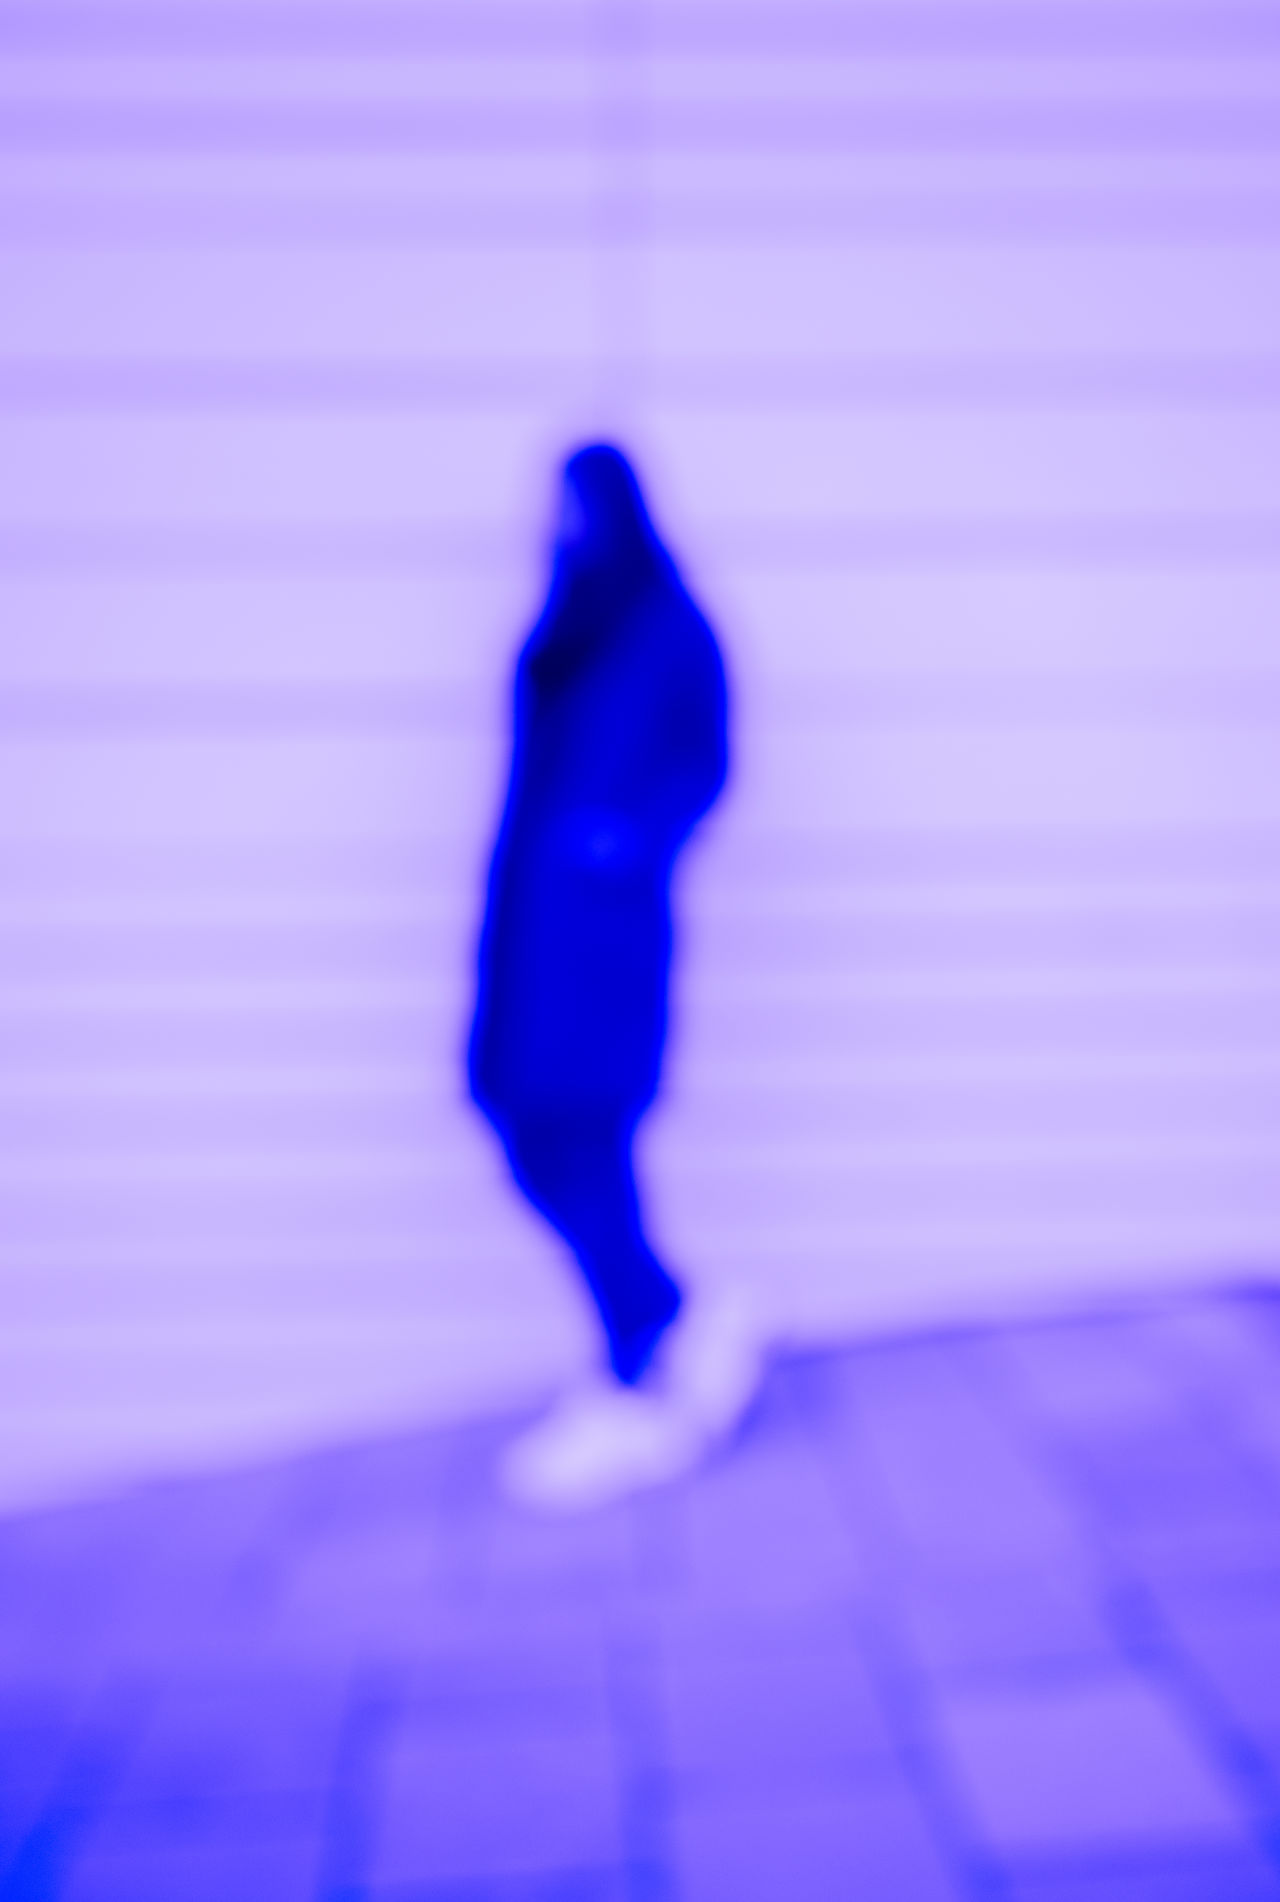 BLURRED SITUATION Blue Full Length